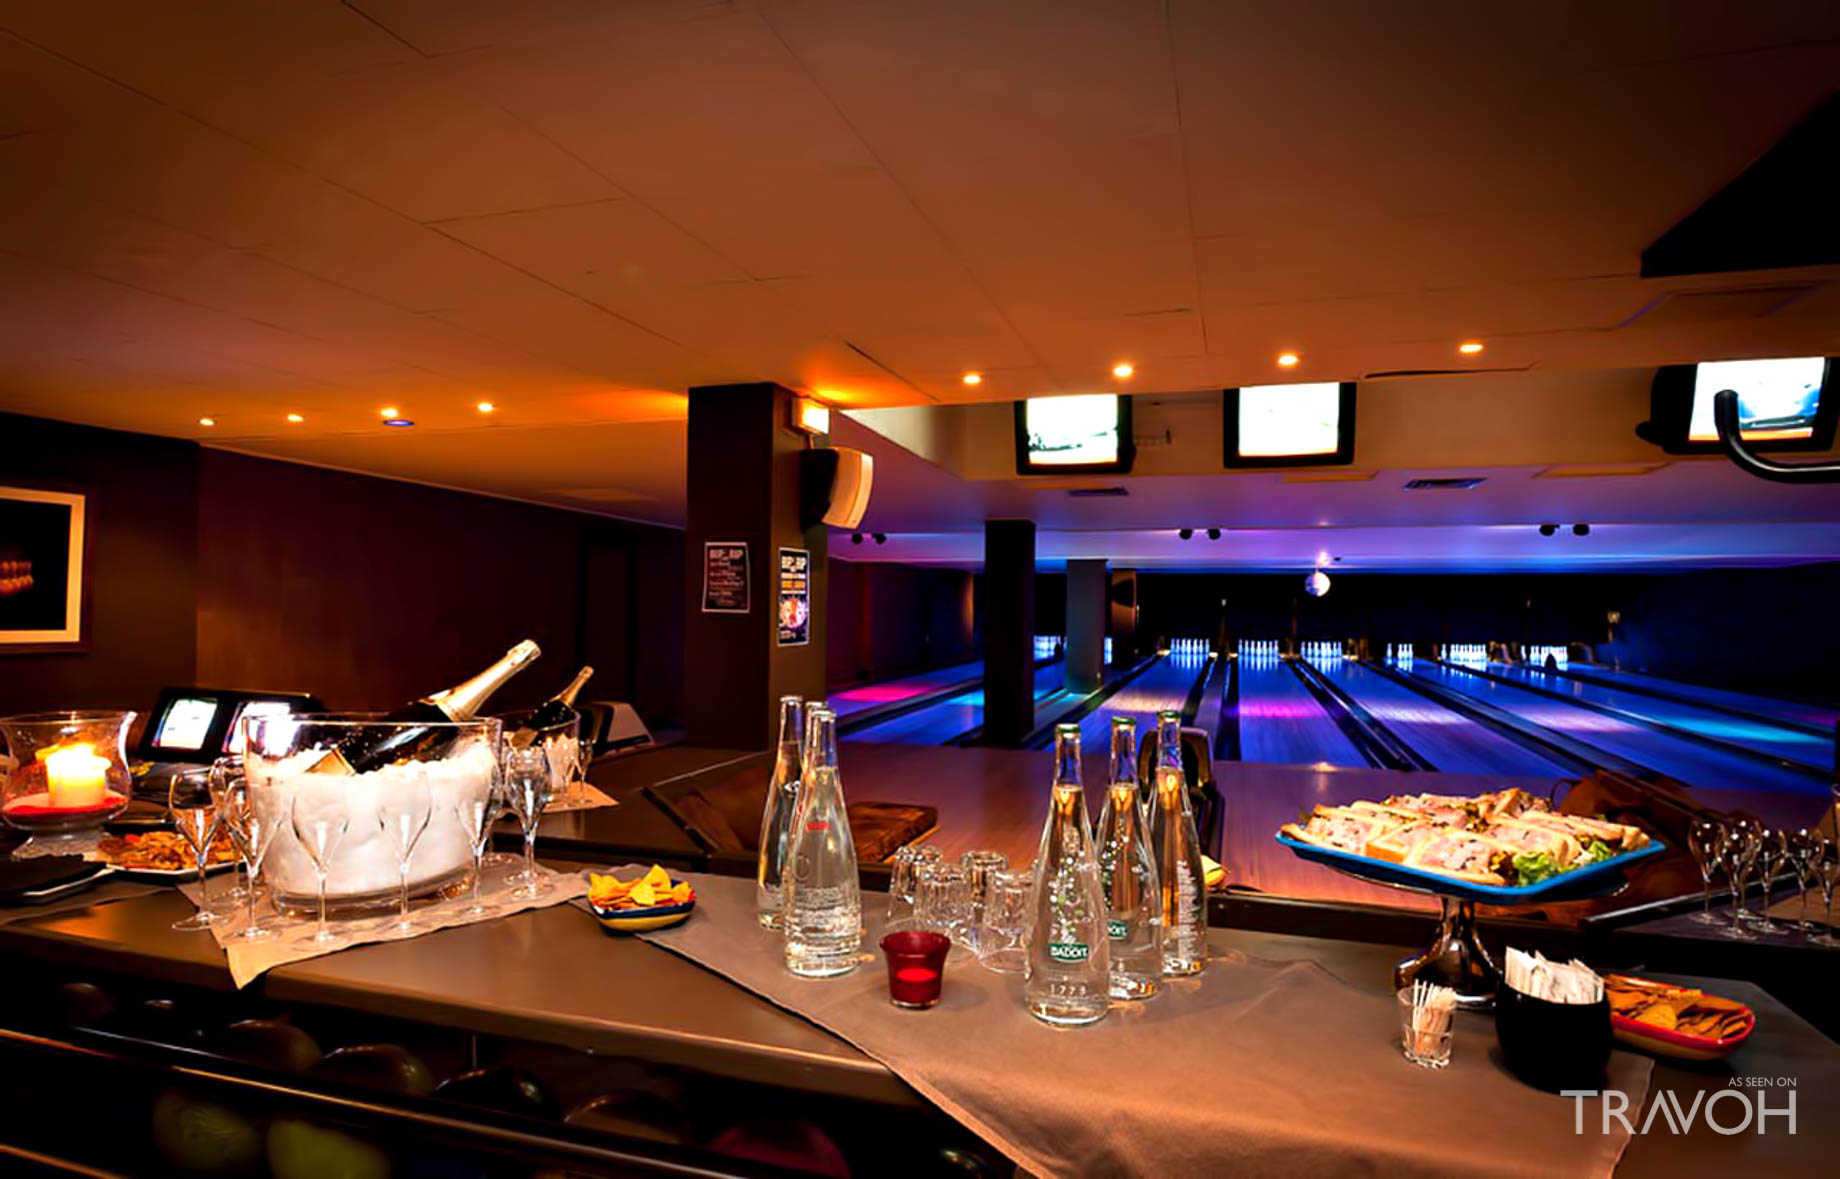 Bowling de Courchevel 1850 - The 10 Best Off-Piste Winter Activities in Courchevel, France